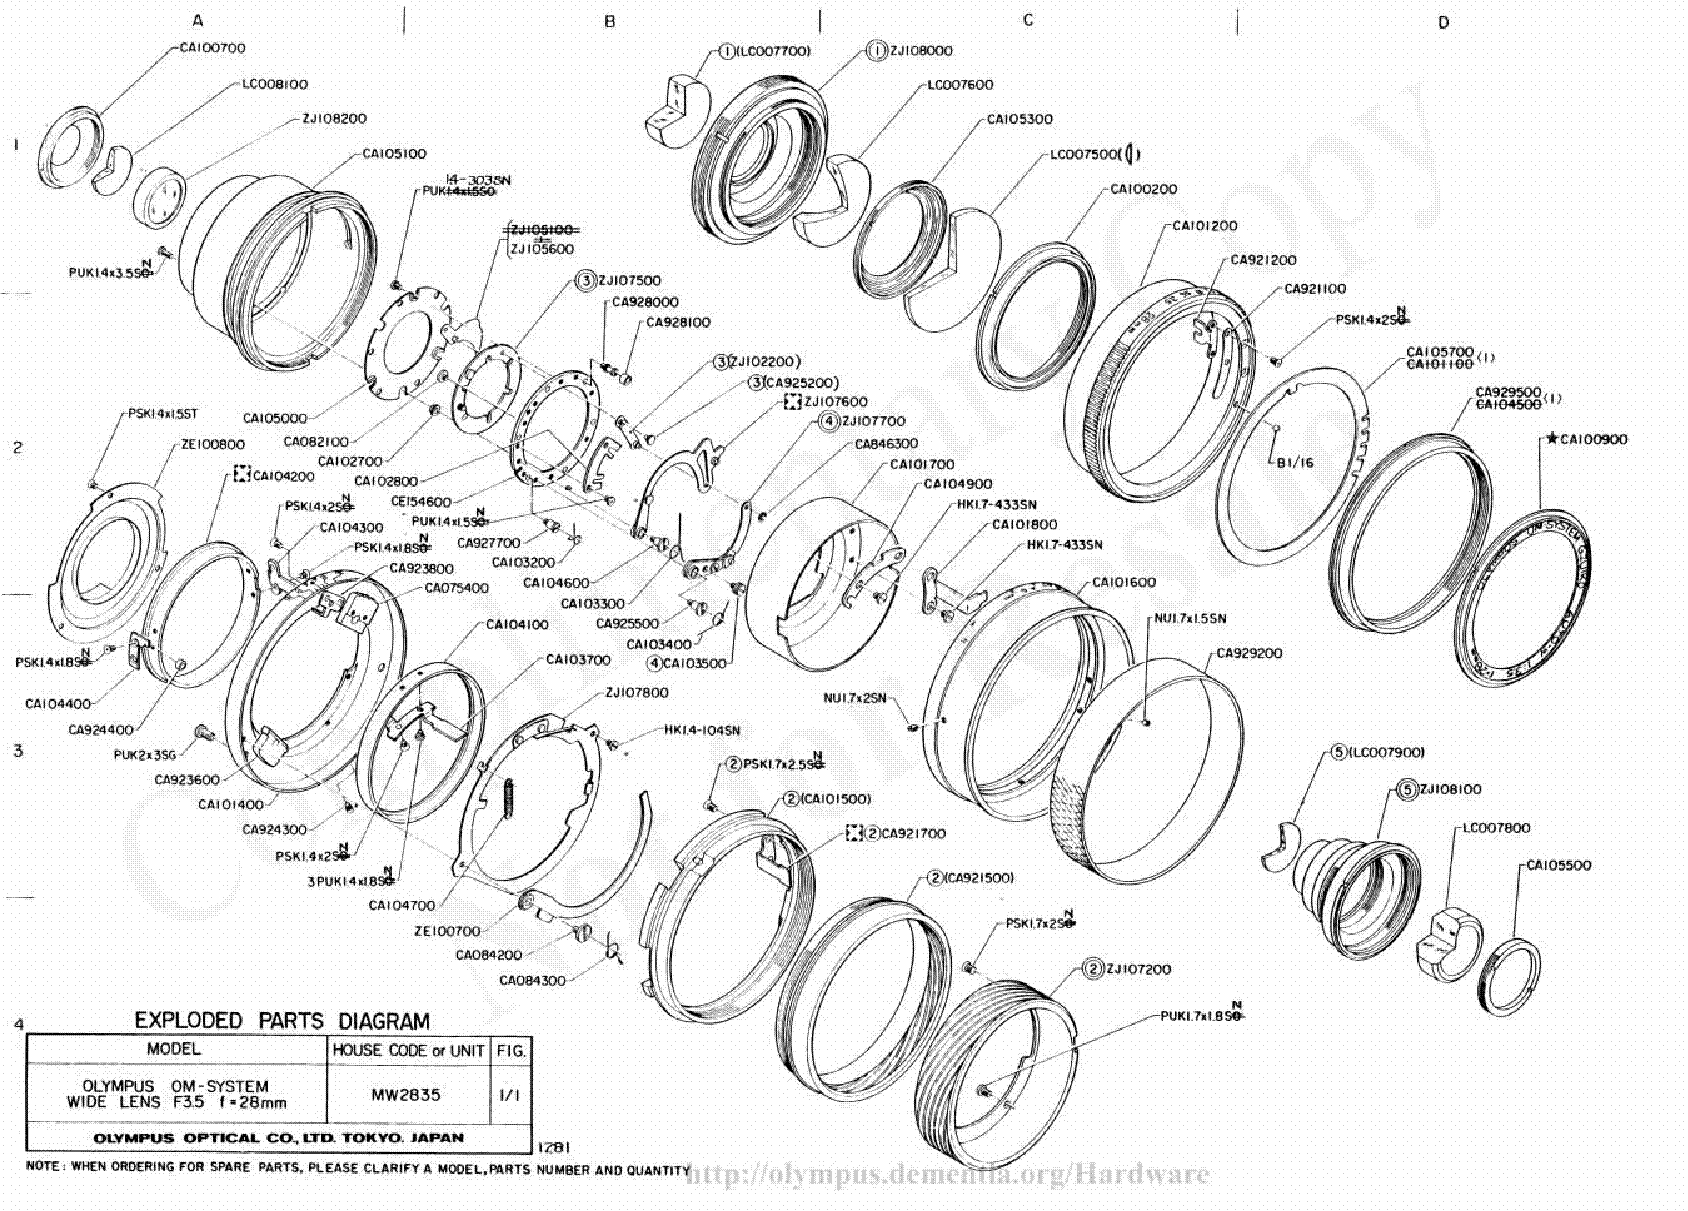 OLYMPUS 42MM F1.2 EXPLODED PARTS DIAGRAM Service Manual